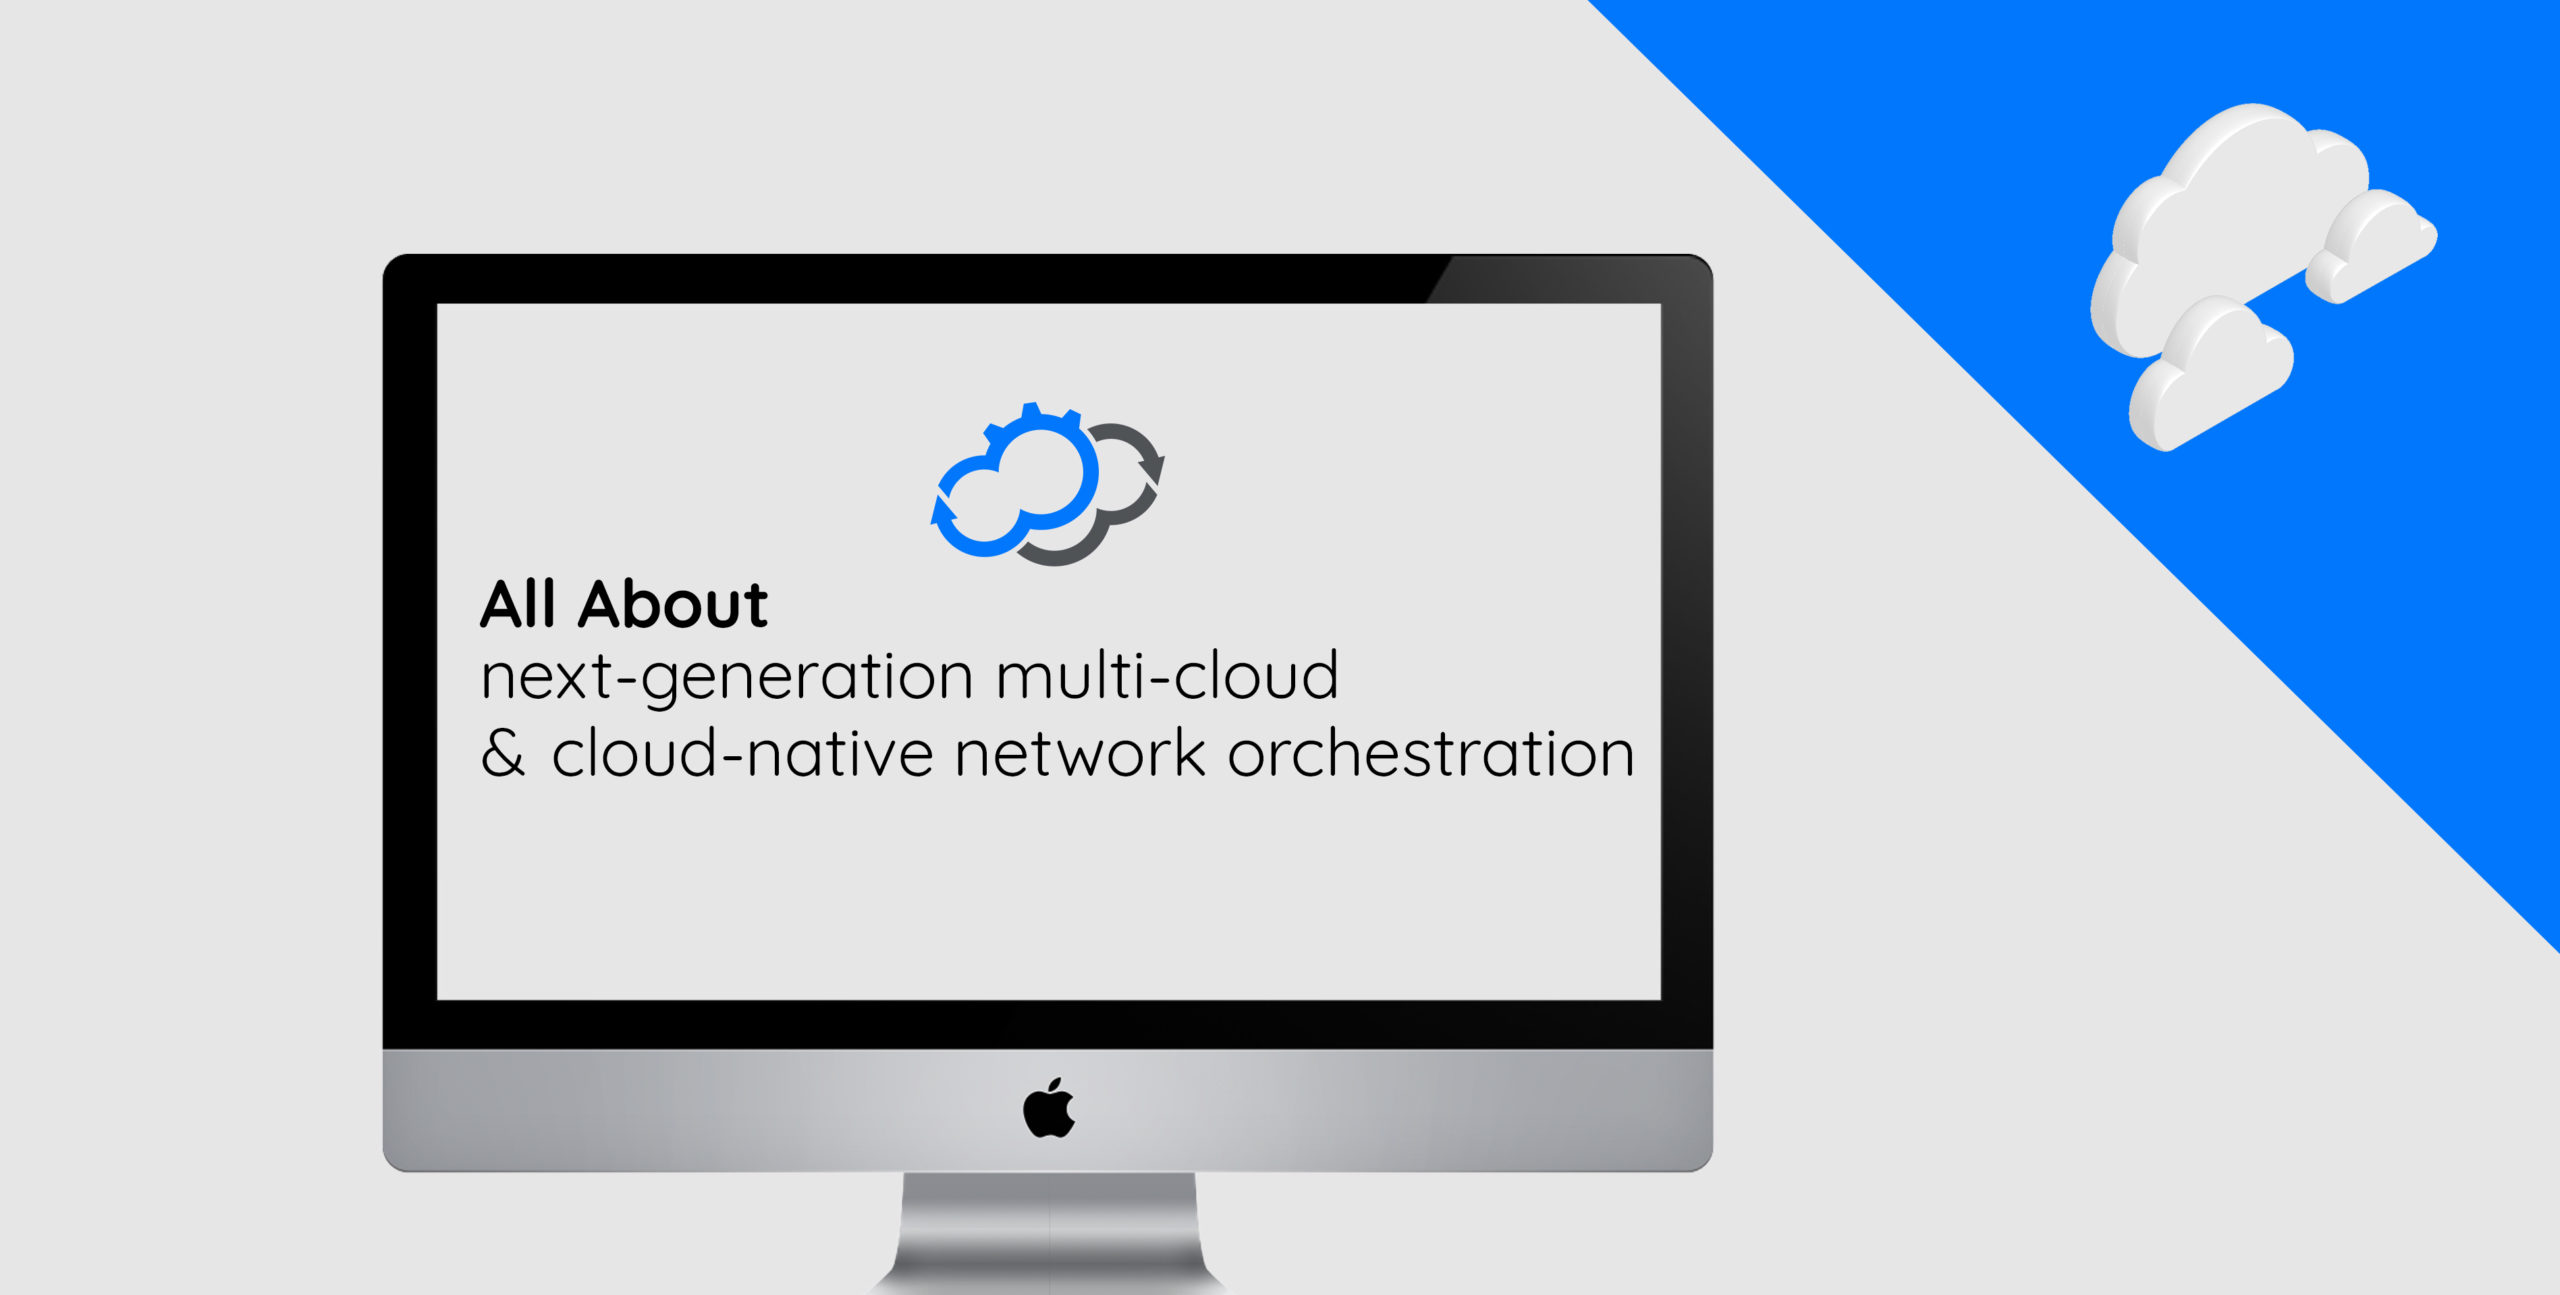 transform traditional network virtualization to next-generation multi-cloud and cloud-native network orchestration.